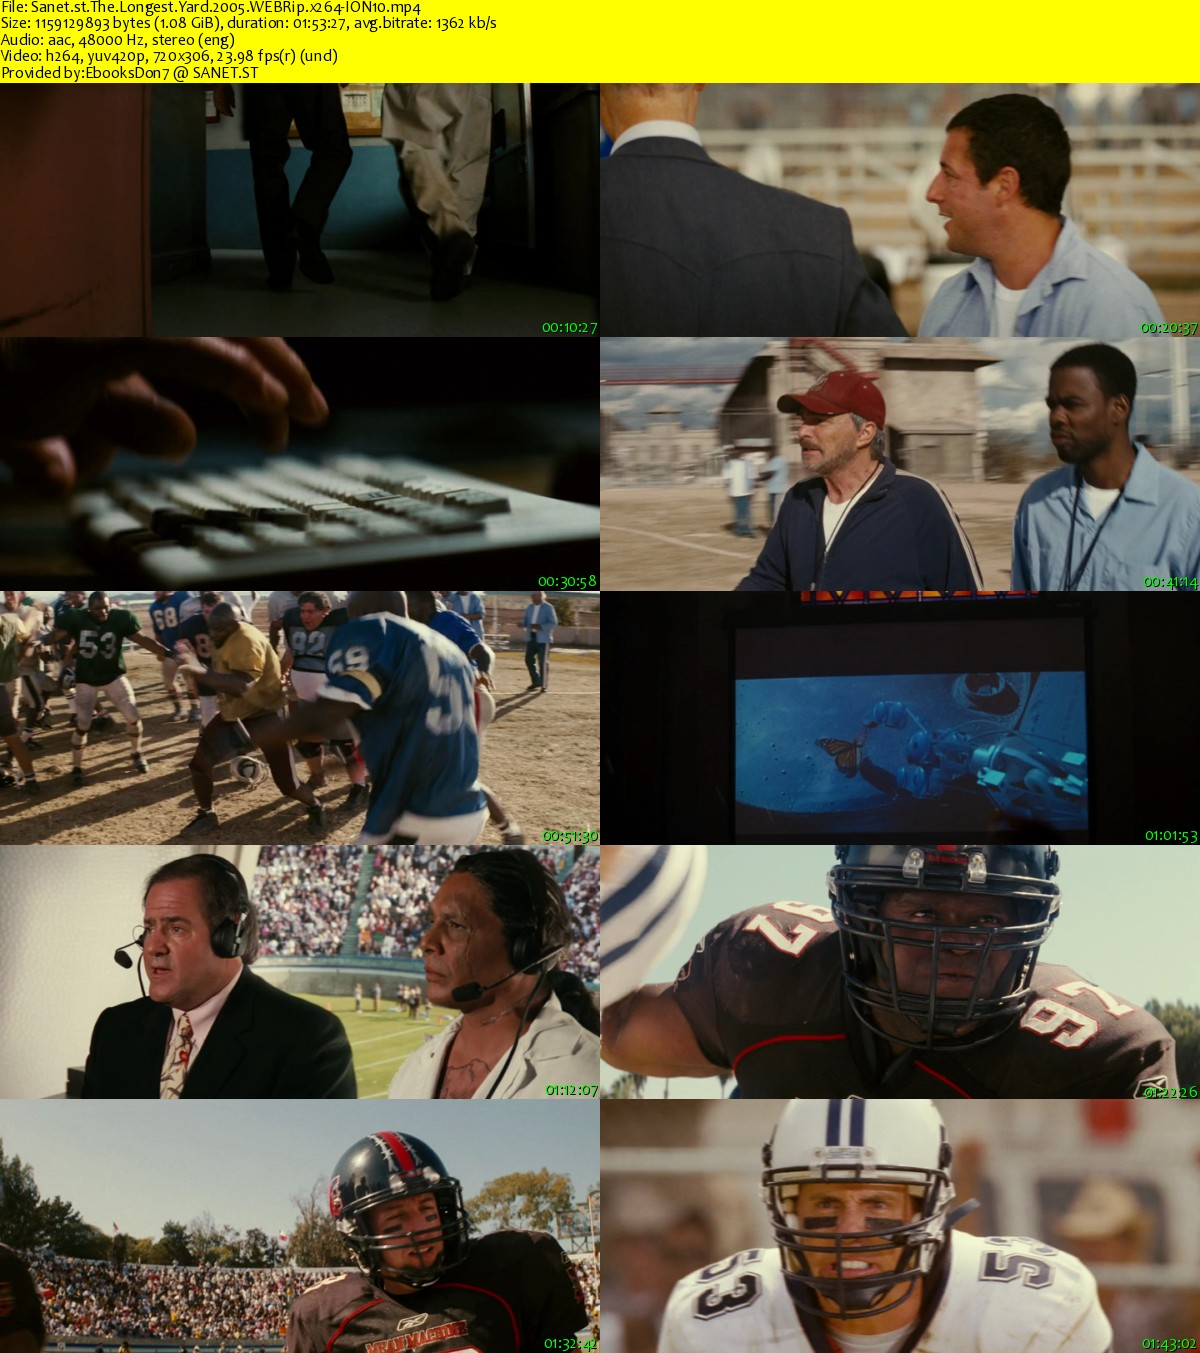 Download The Longest Yard 2005 Webrip X264 Ion10 Softarchive